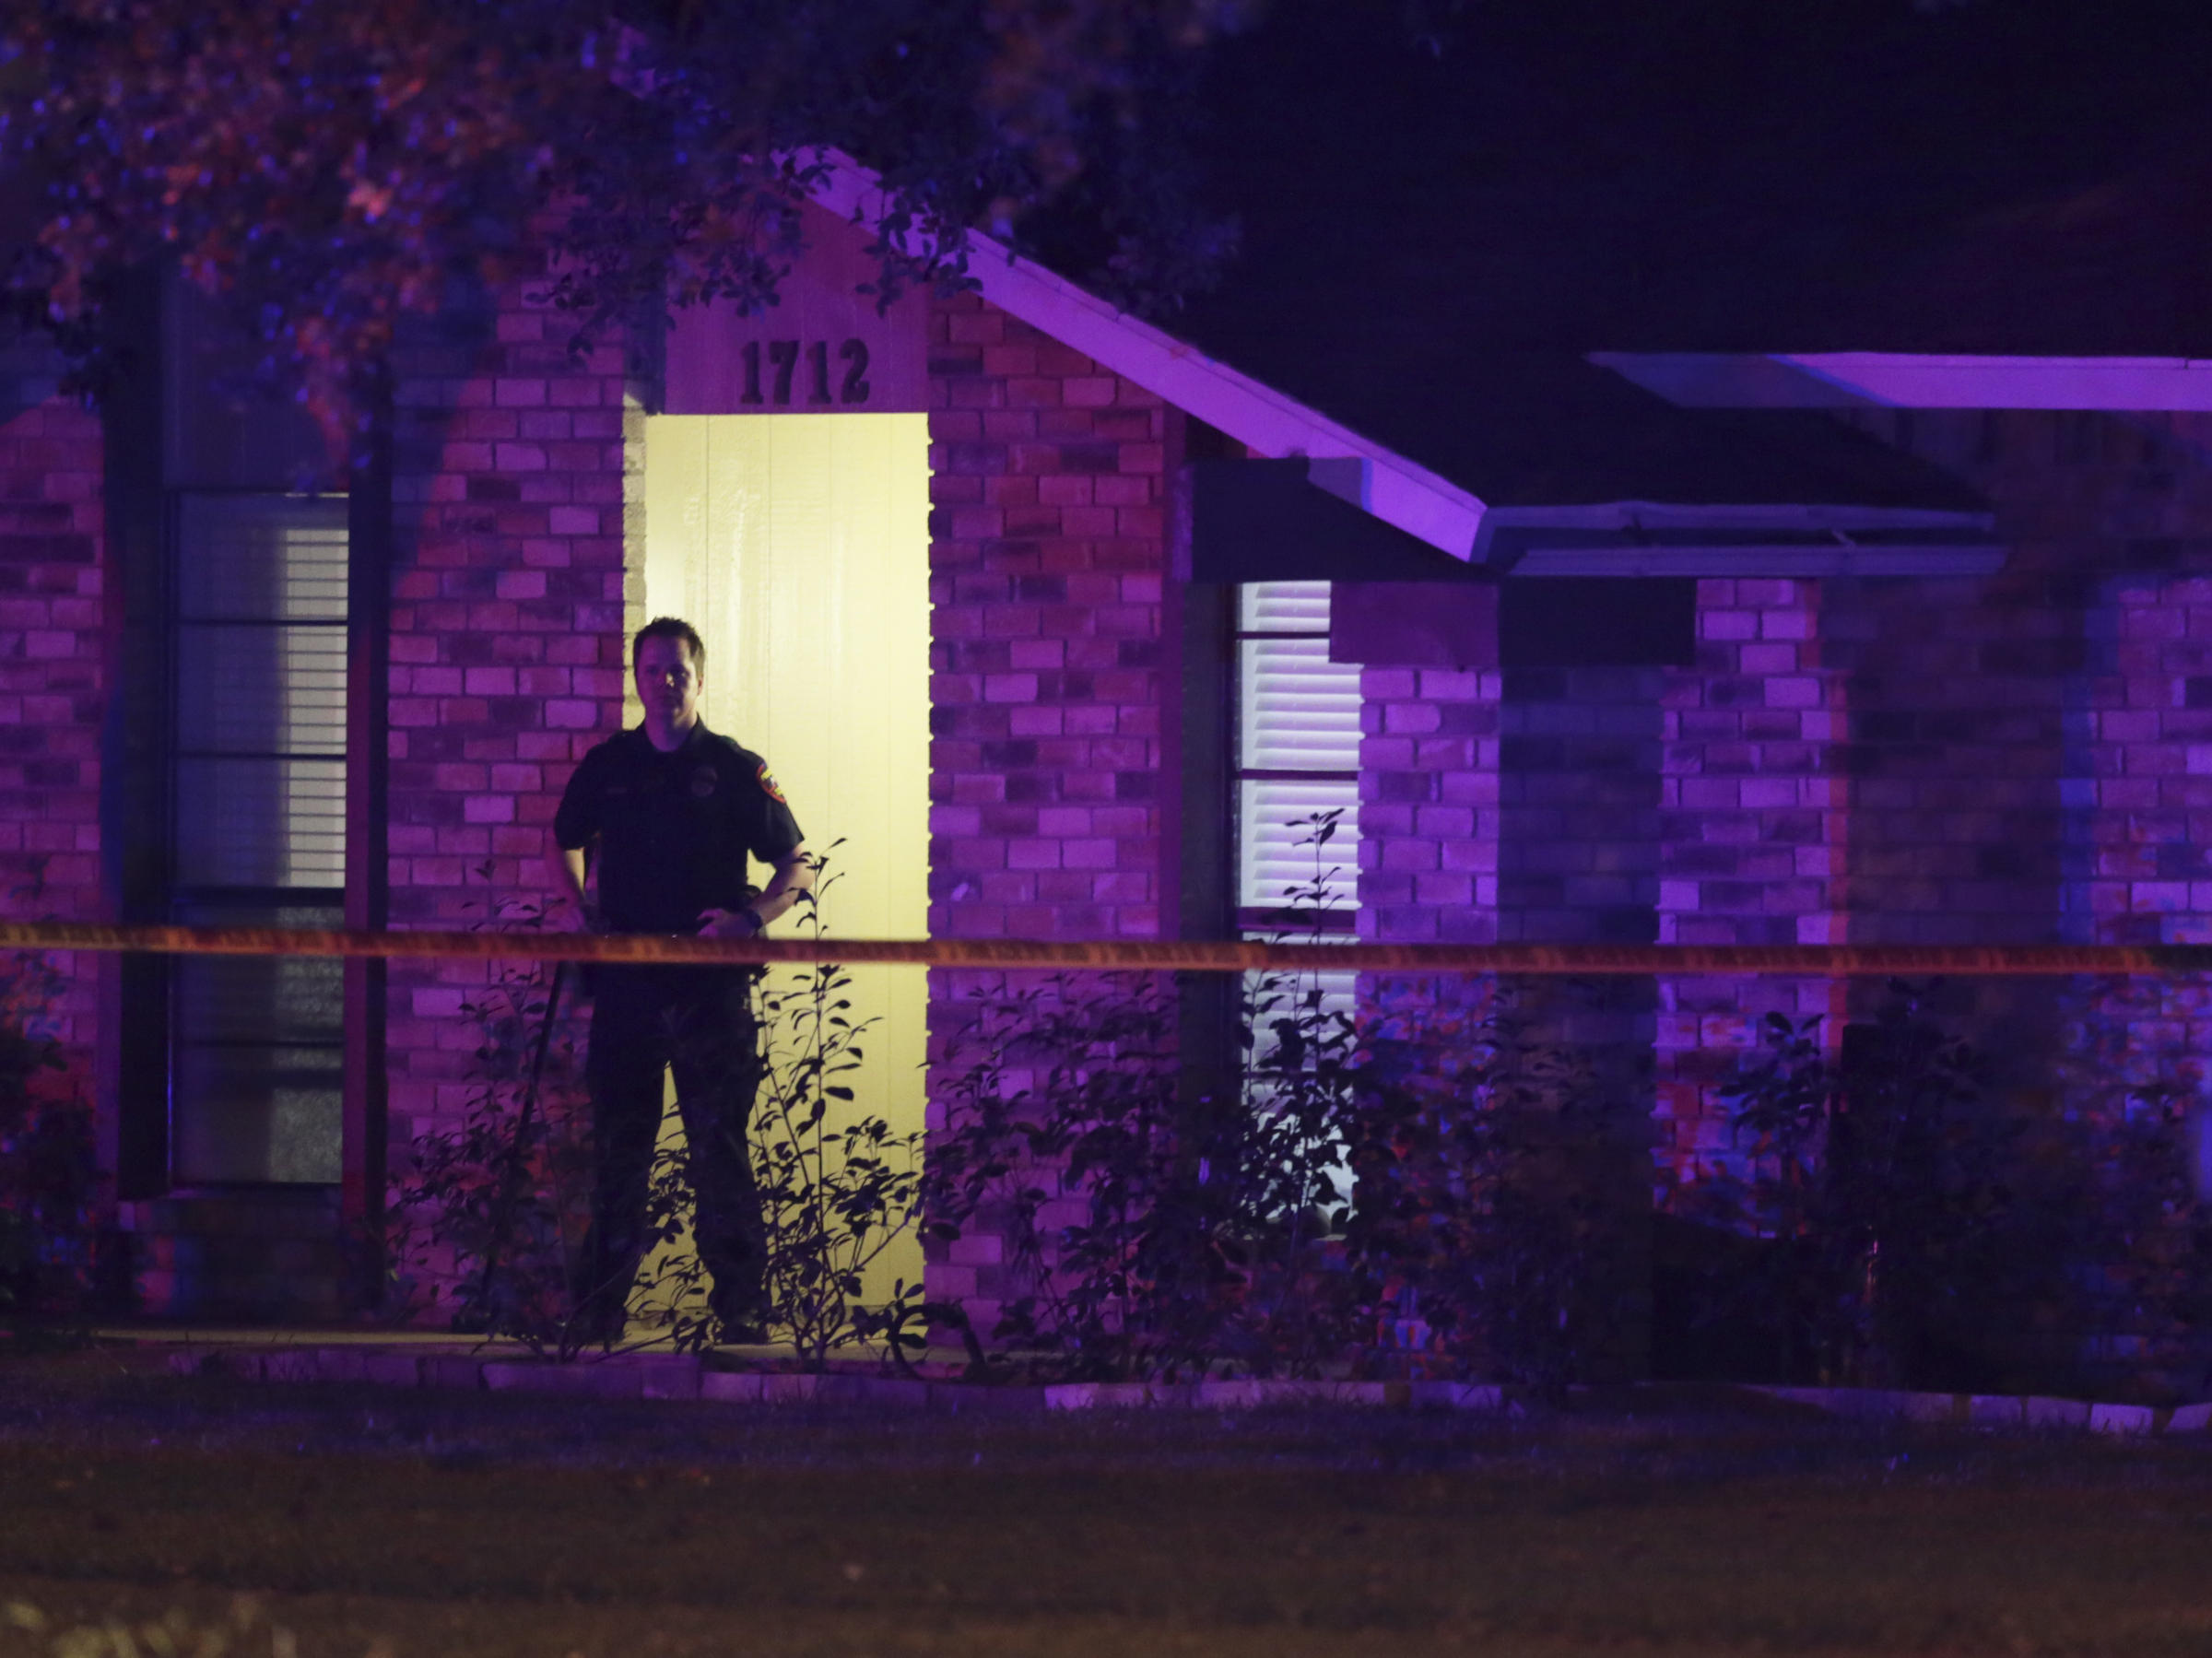 People Dead After Shooting Inside A Home In Plano, Texas